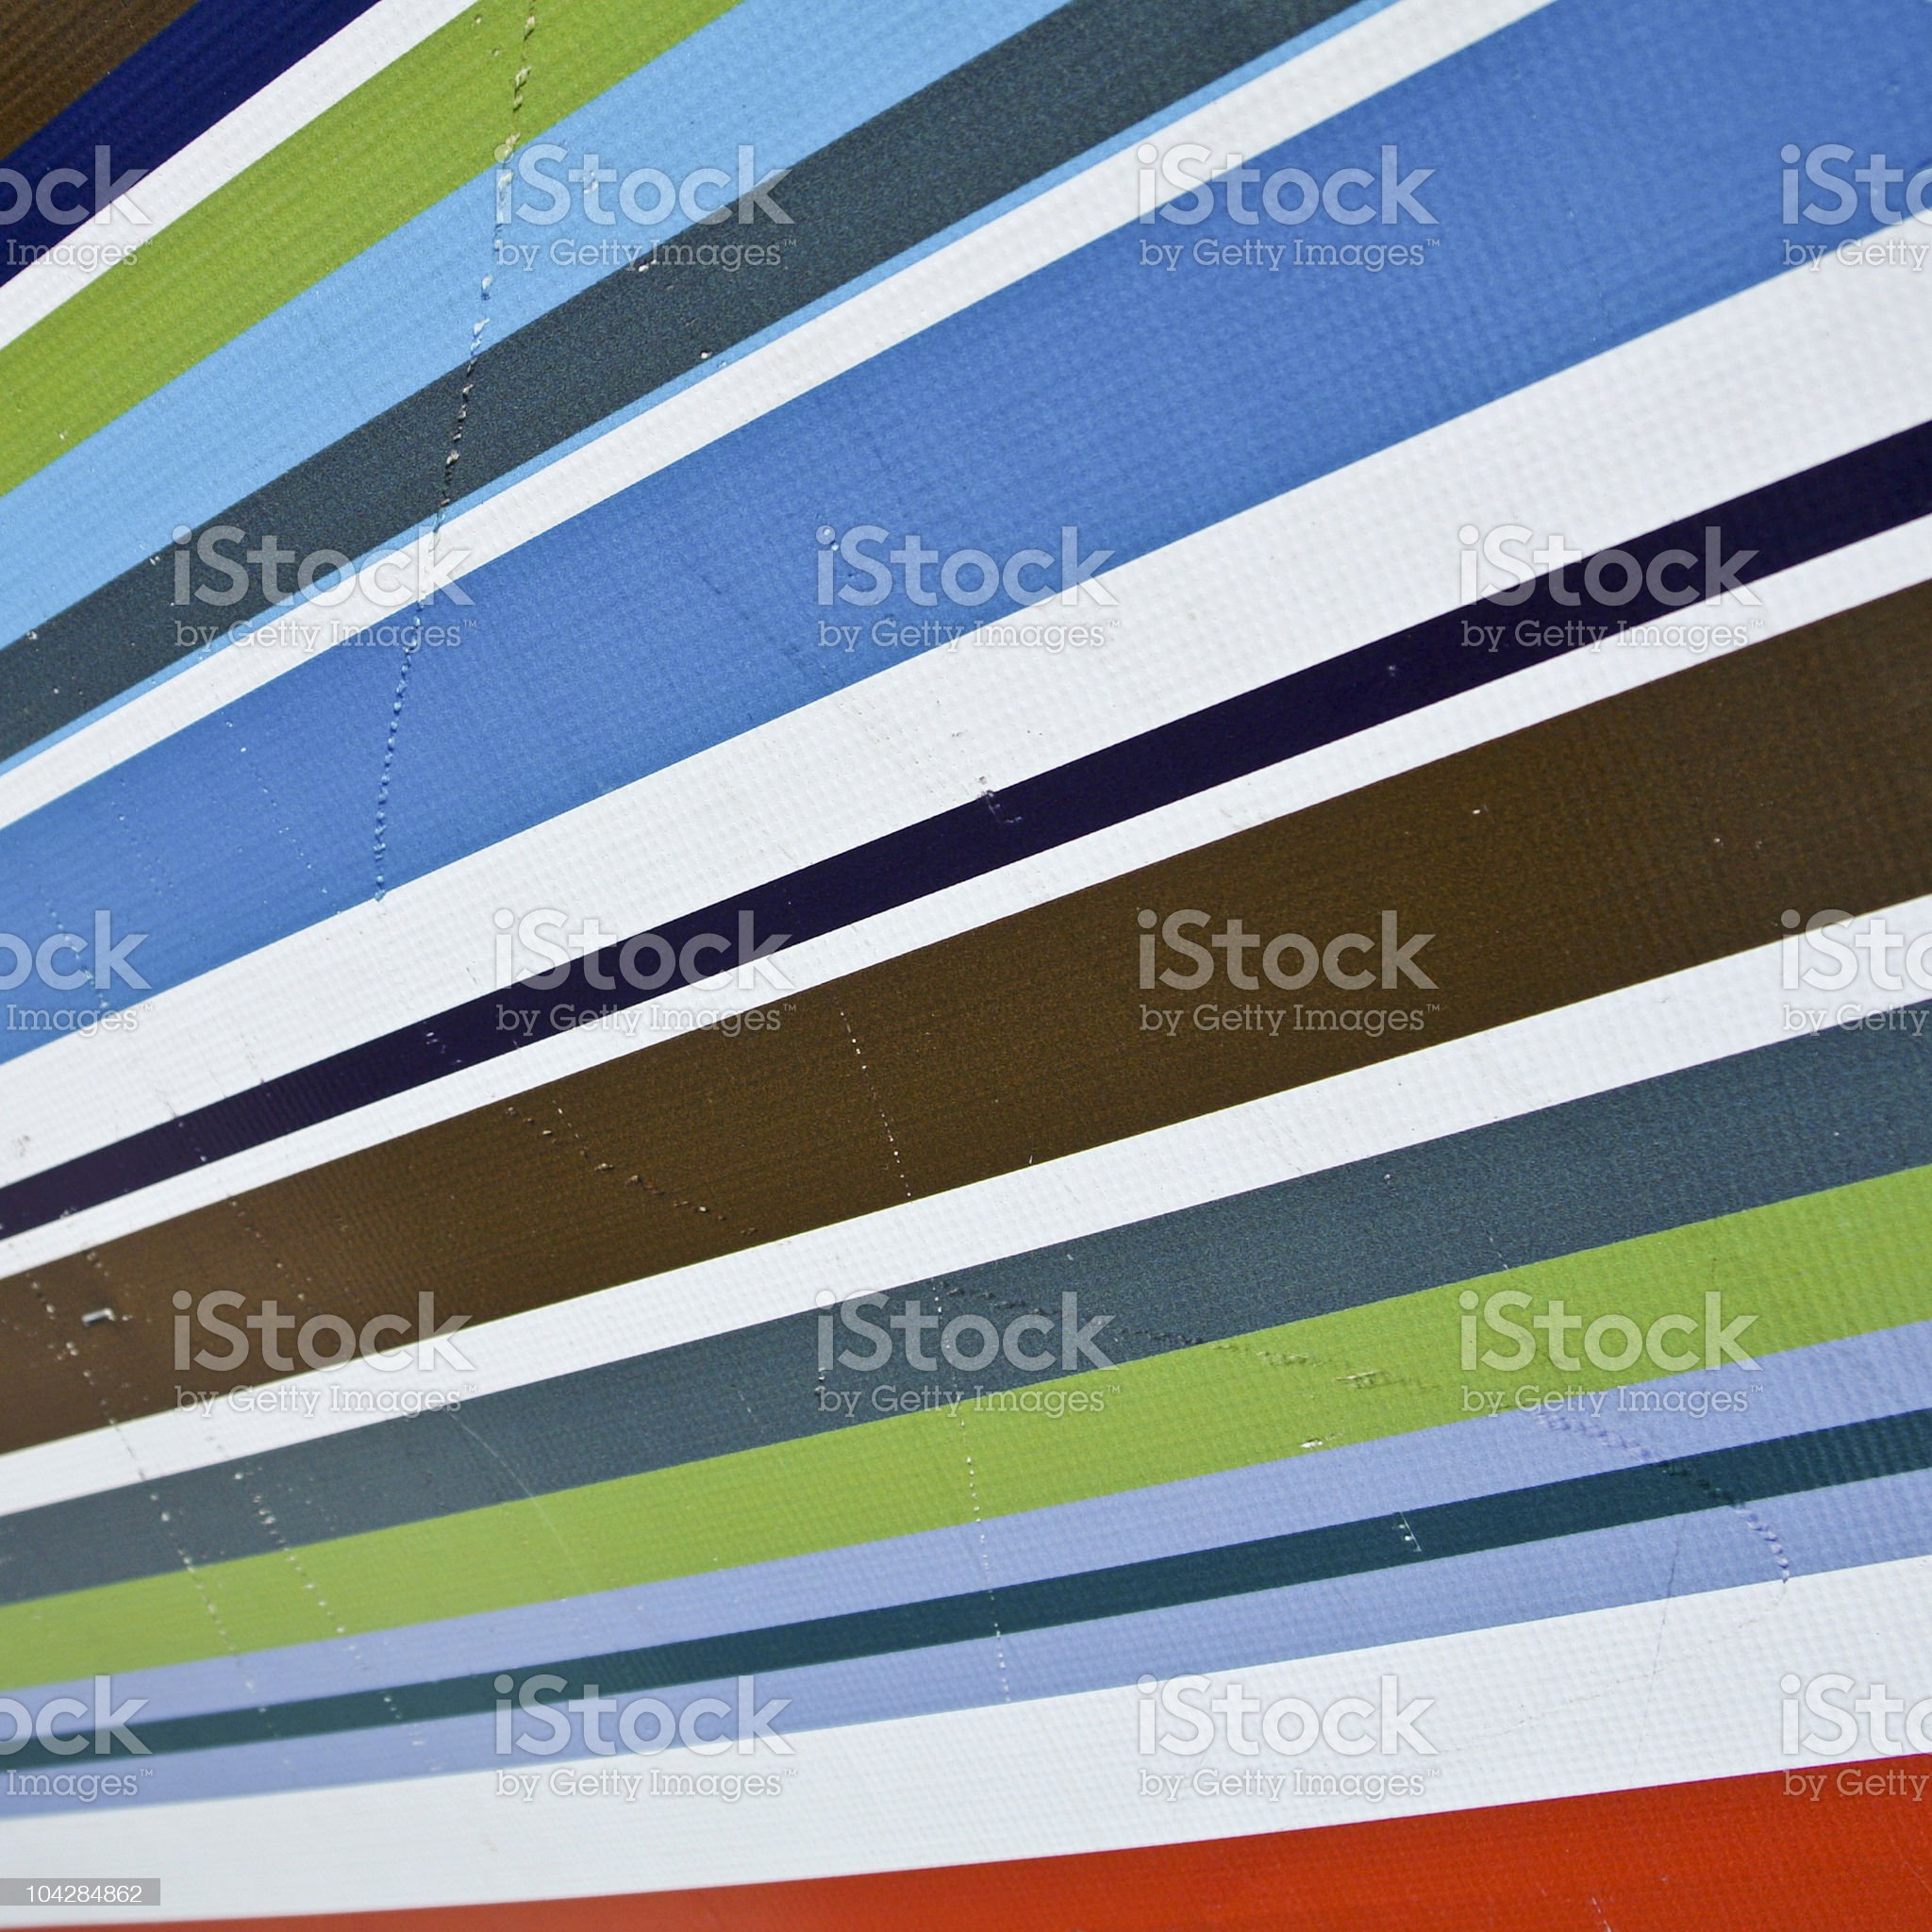 Color background royalty-free stock photo